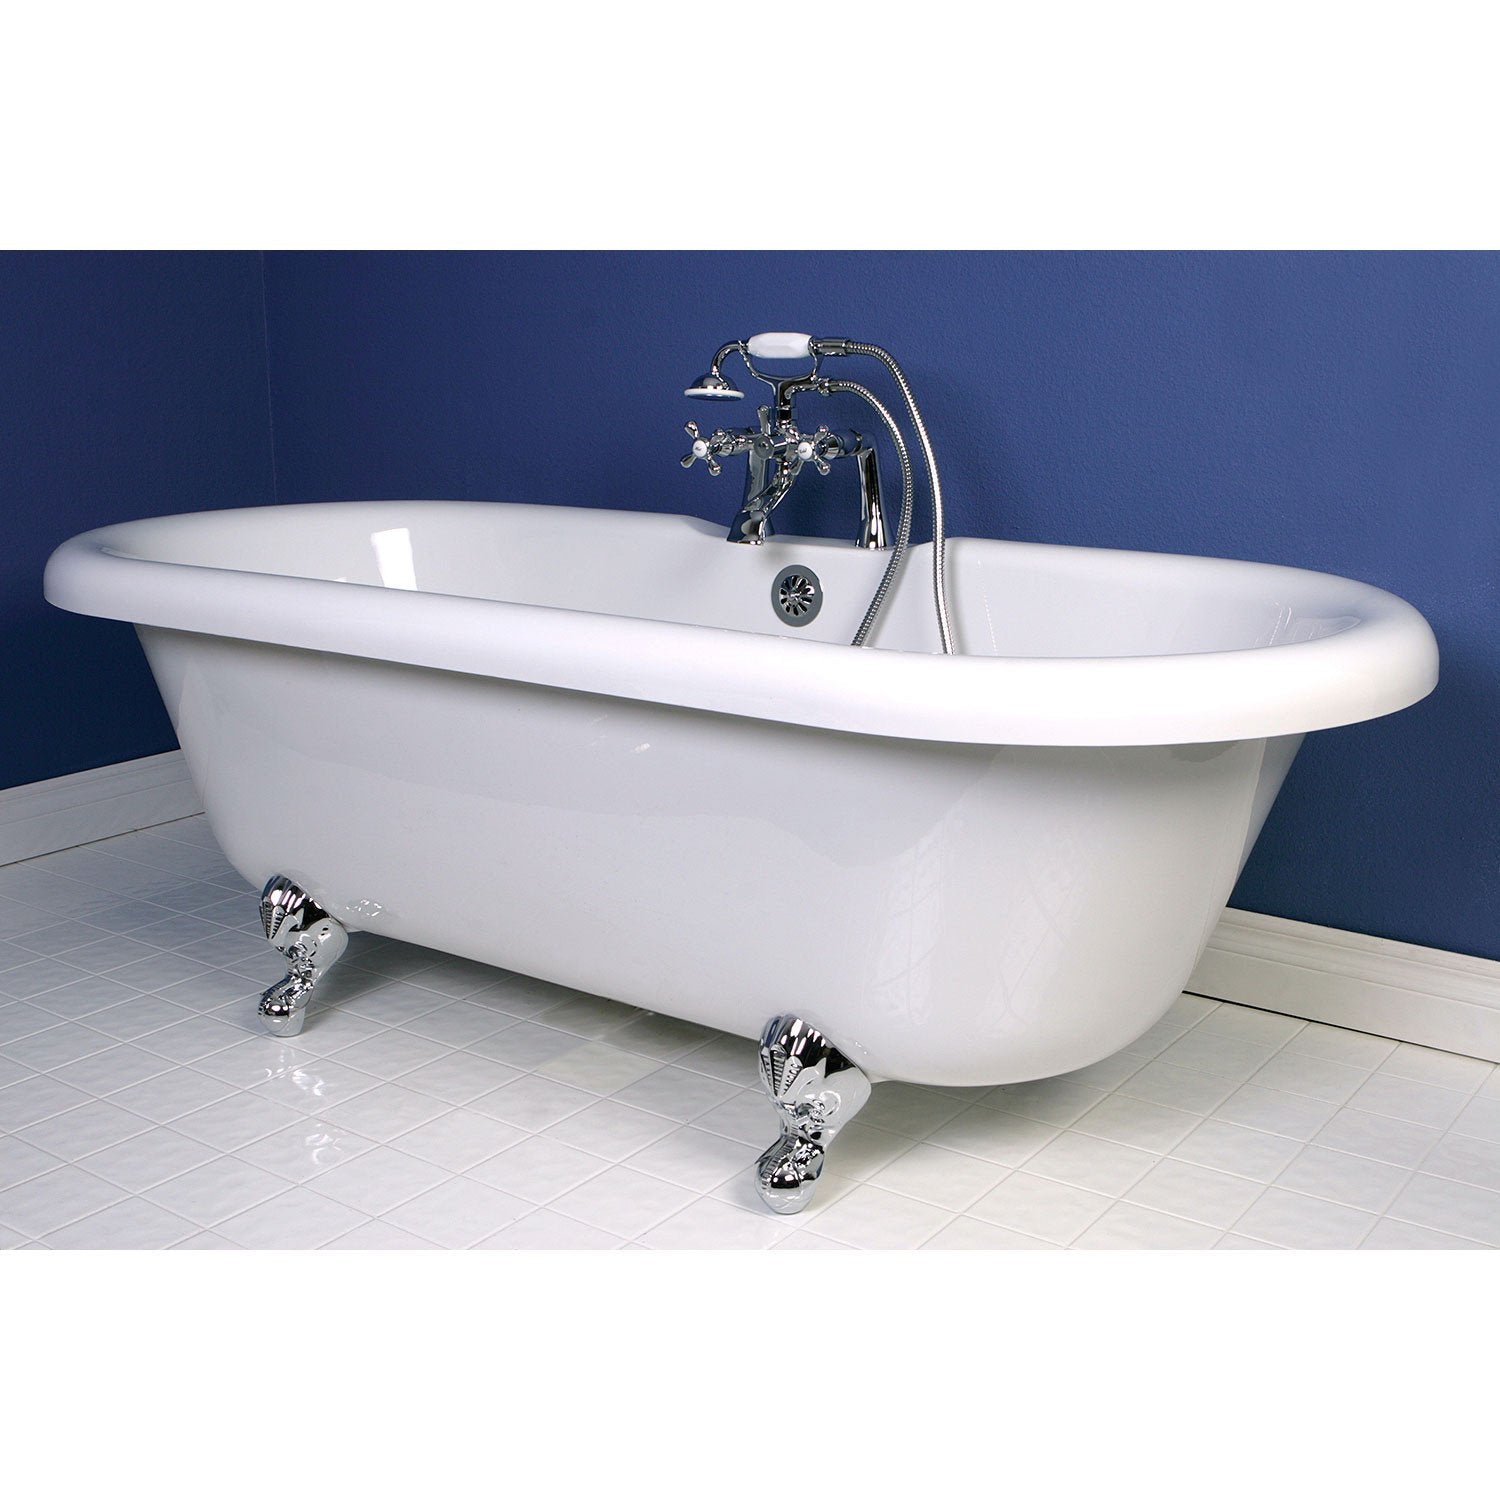 67 Acrylic Clawfoot Tub With Chrome Tub Filler Faucet Hardware Package Ctp44